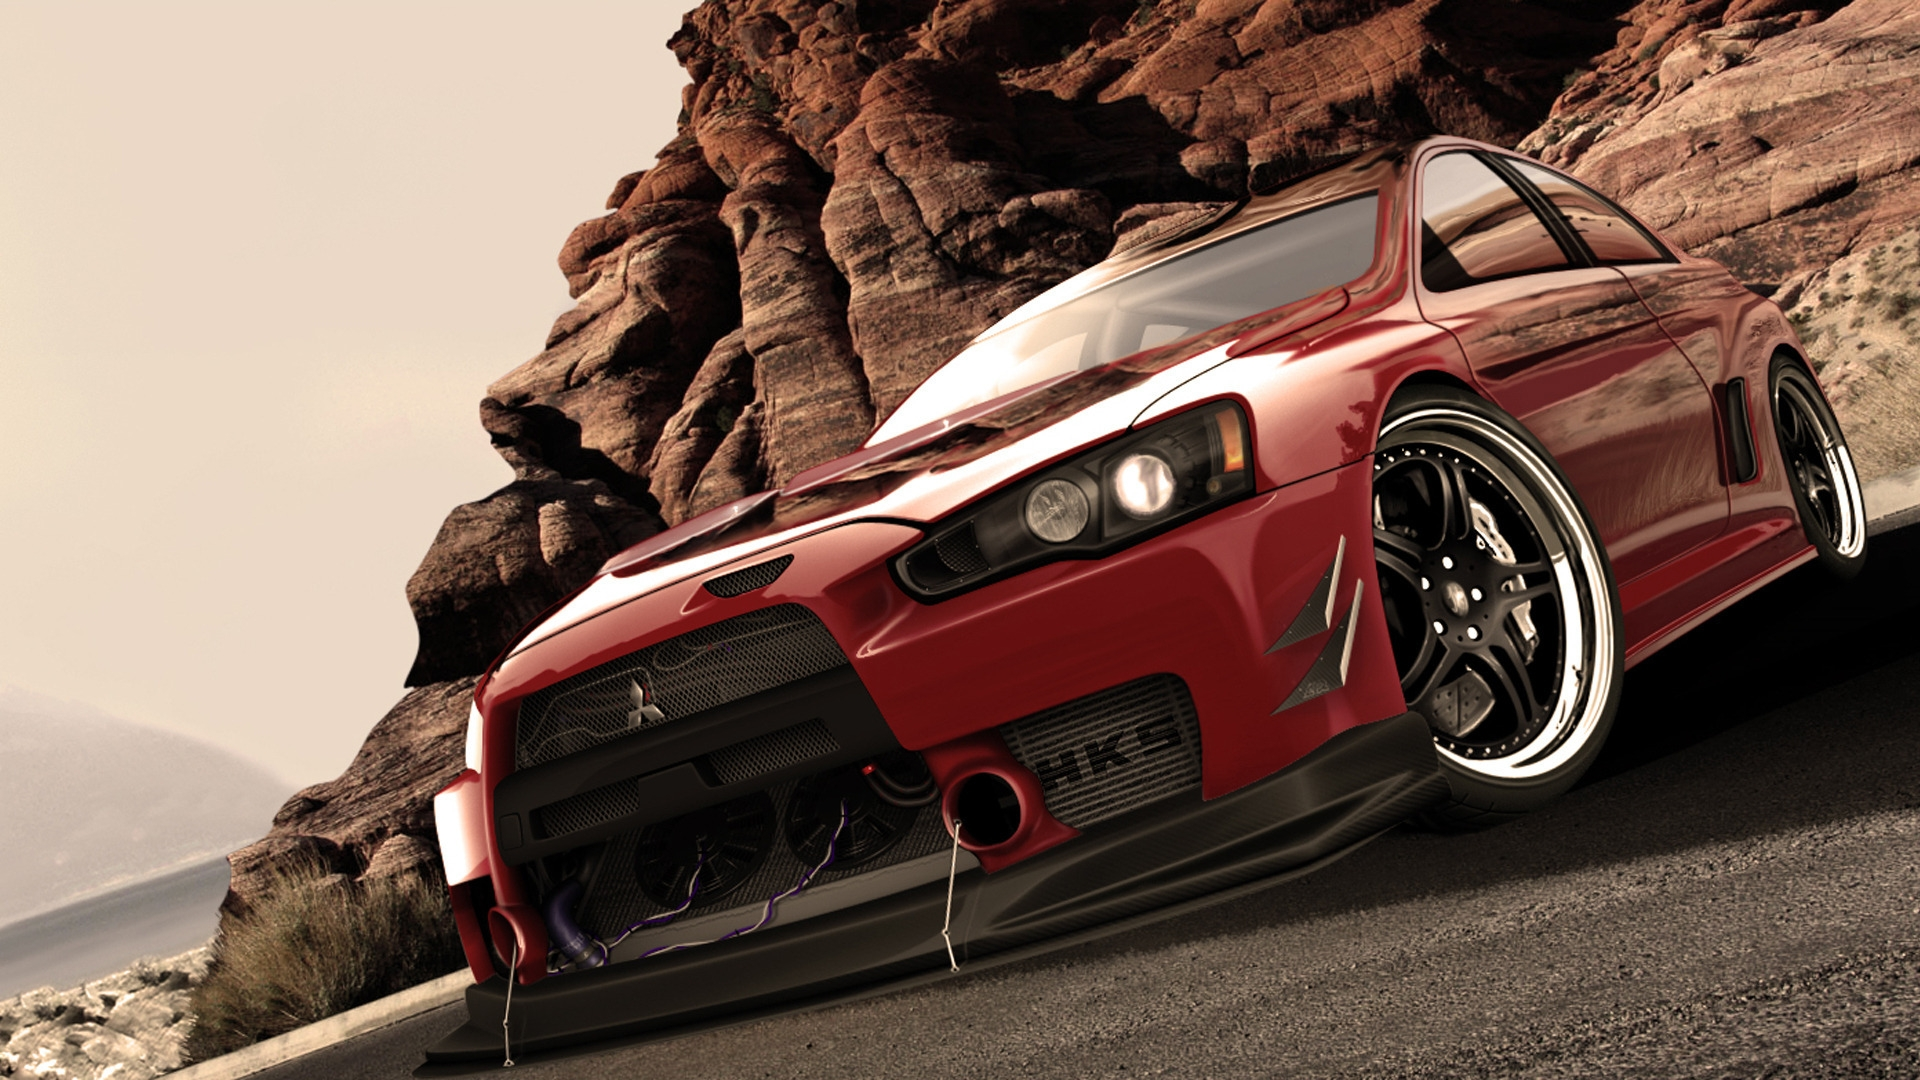 Fast And Furious Hd Wallpapers 1080p Fast And Furious Backgrounds Free Download Pixelstalk Net